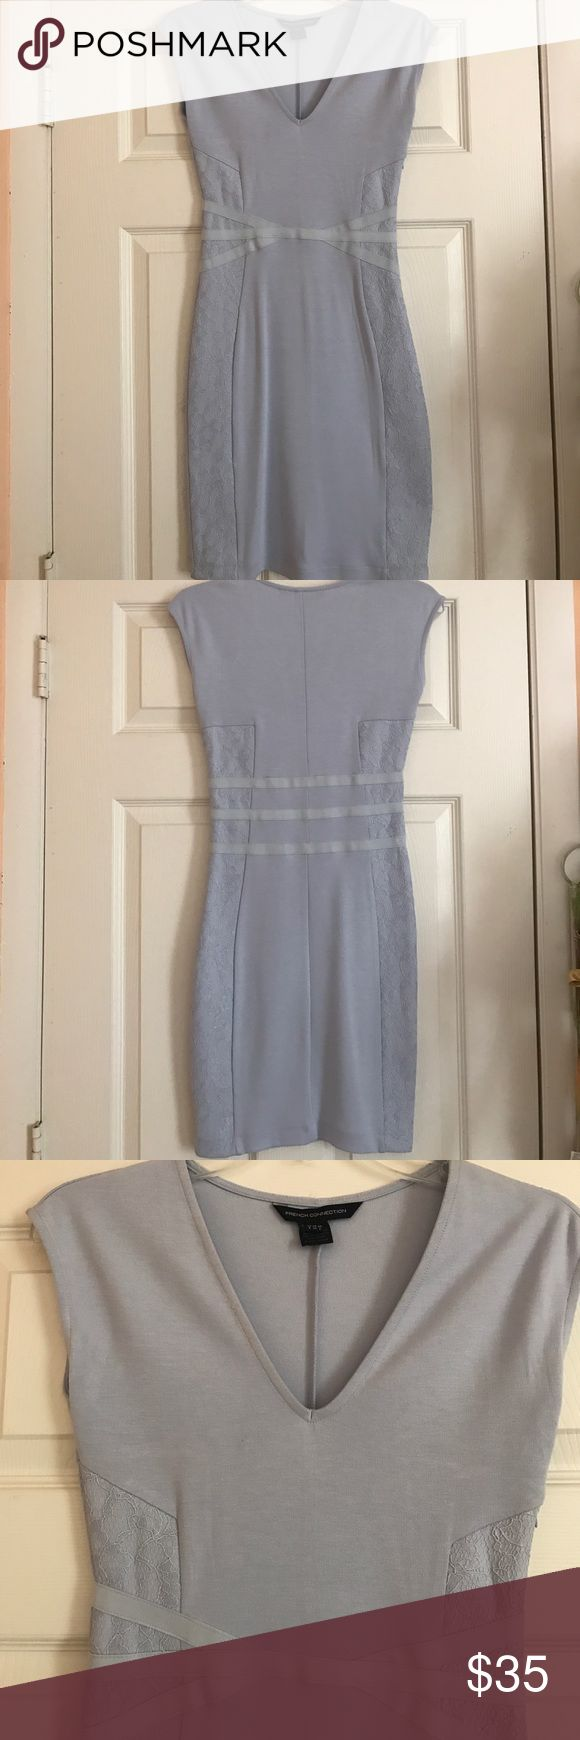 "FRENCH CONNECTION BODYCON DRESS Light blue bodycon dress with lace and banded detailing; cap sleeves with a ""V"" in the front; worn only once and in excellent condition; Brand: French Connection; Size: UK-6, FR-34, US-2 French Connection Dresses"